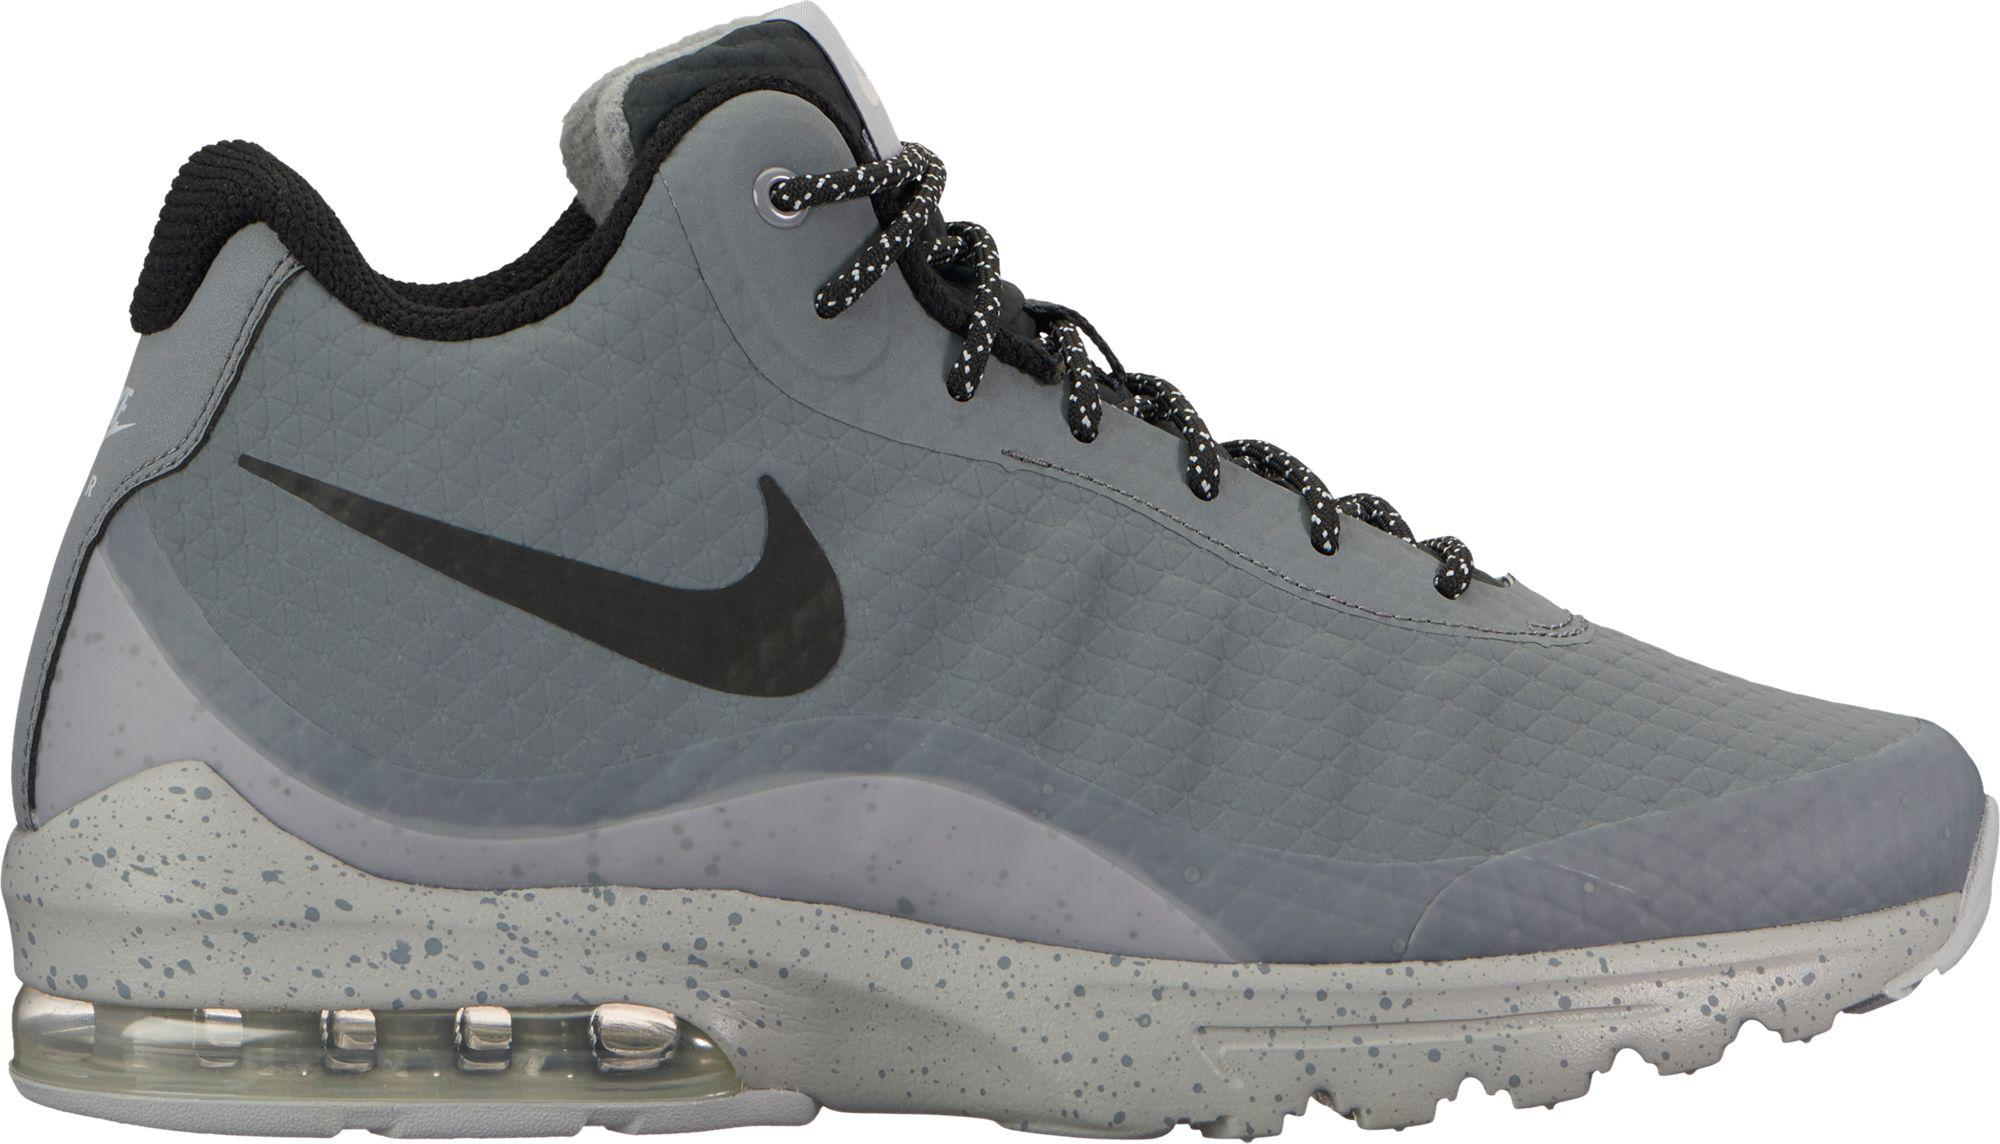 Lyst Nike Air Max Invigor Mid Shoes in Gray for Men